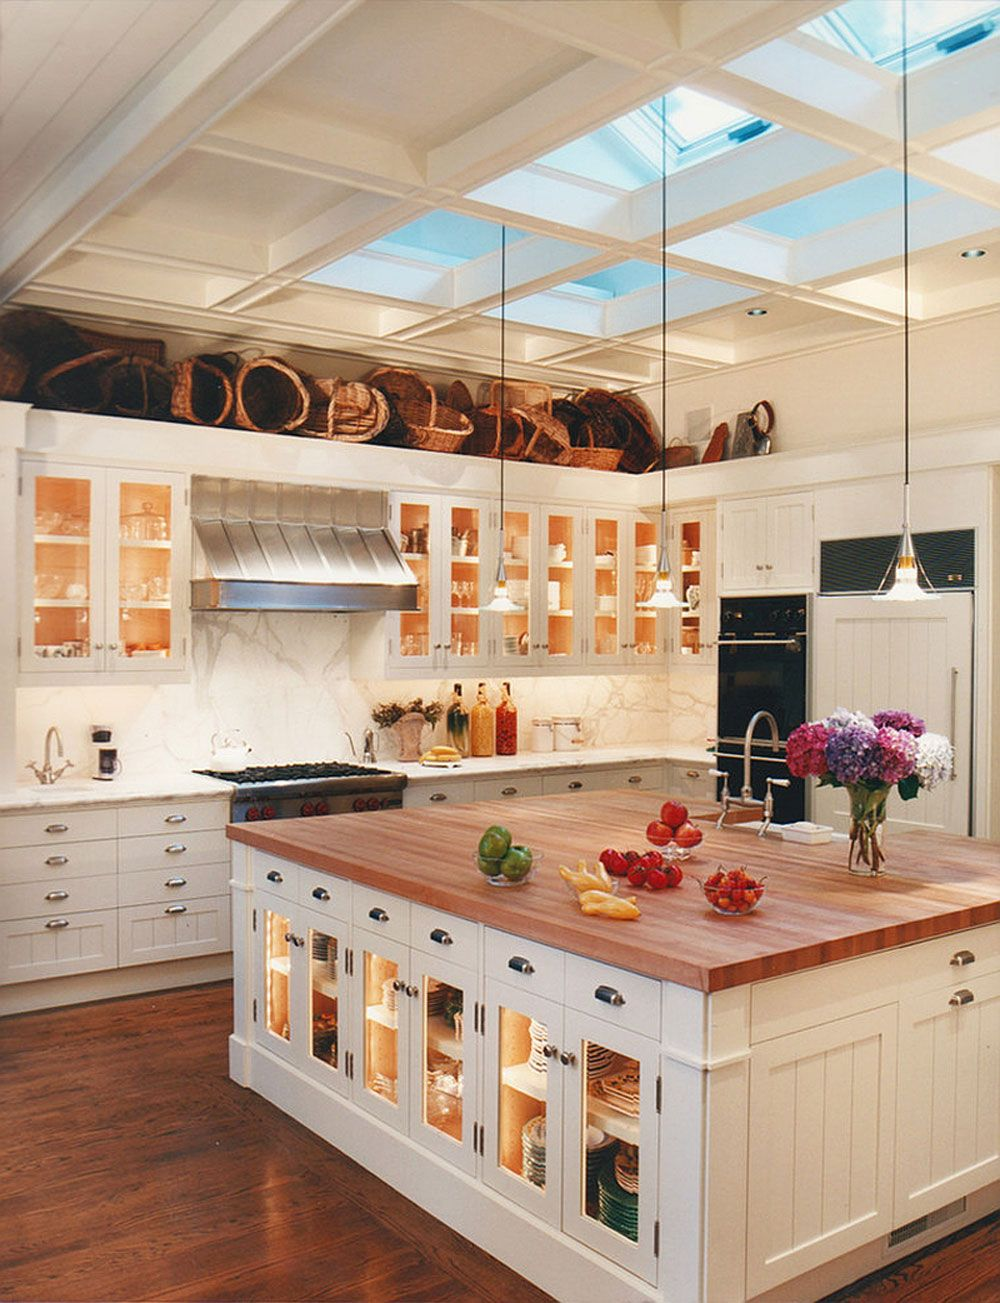 29 Celebrity Kitchens With Incredible Style With Images School